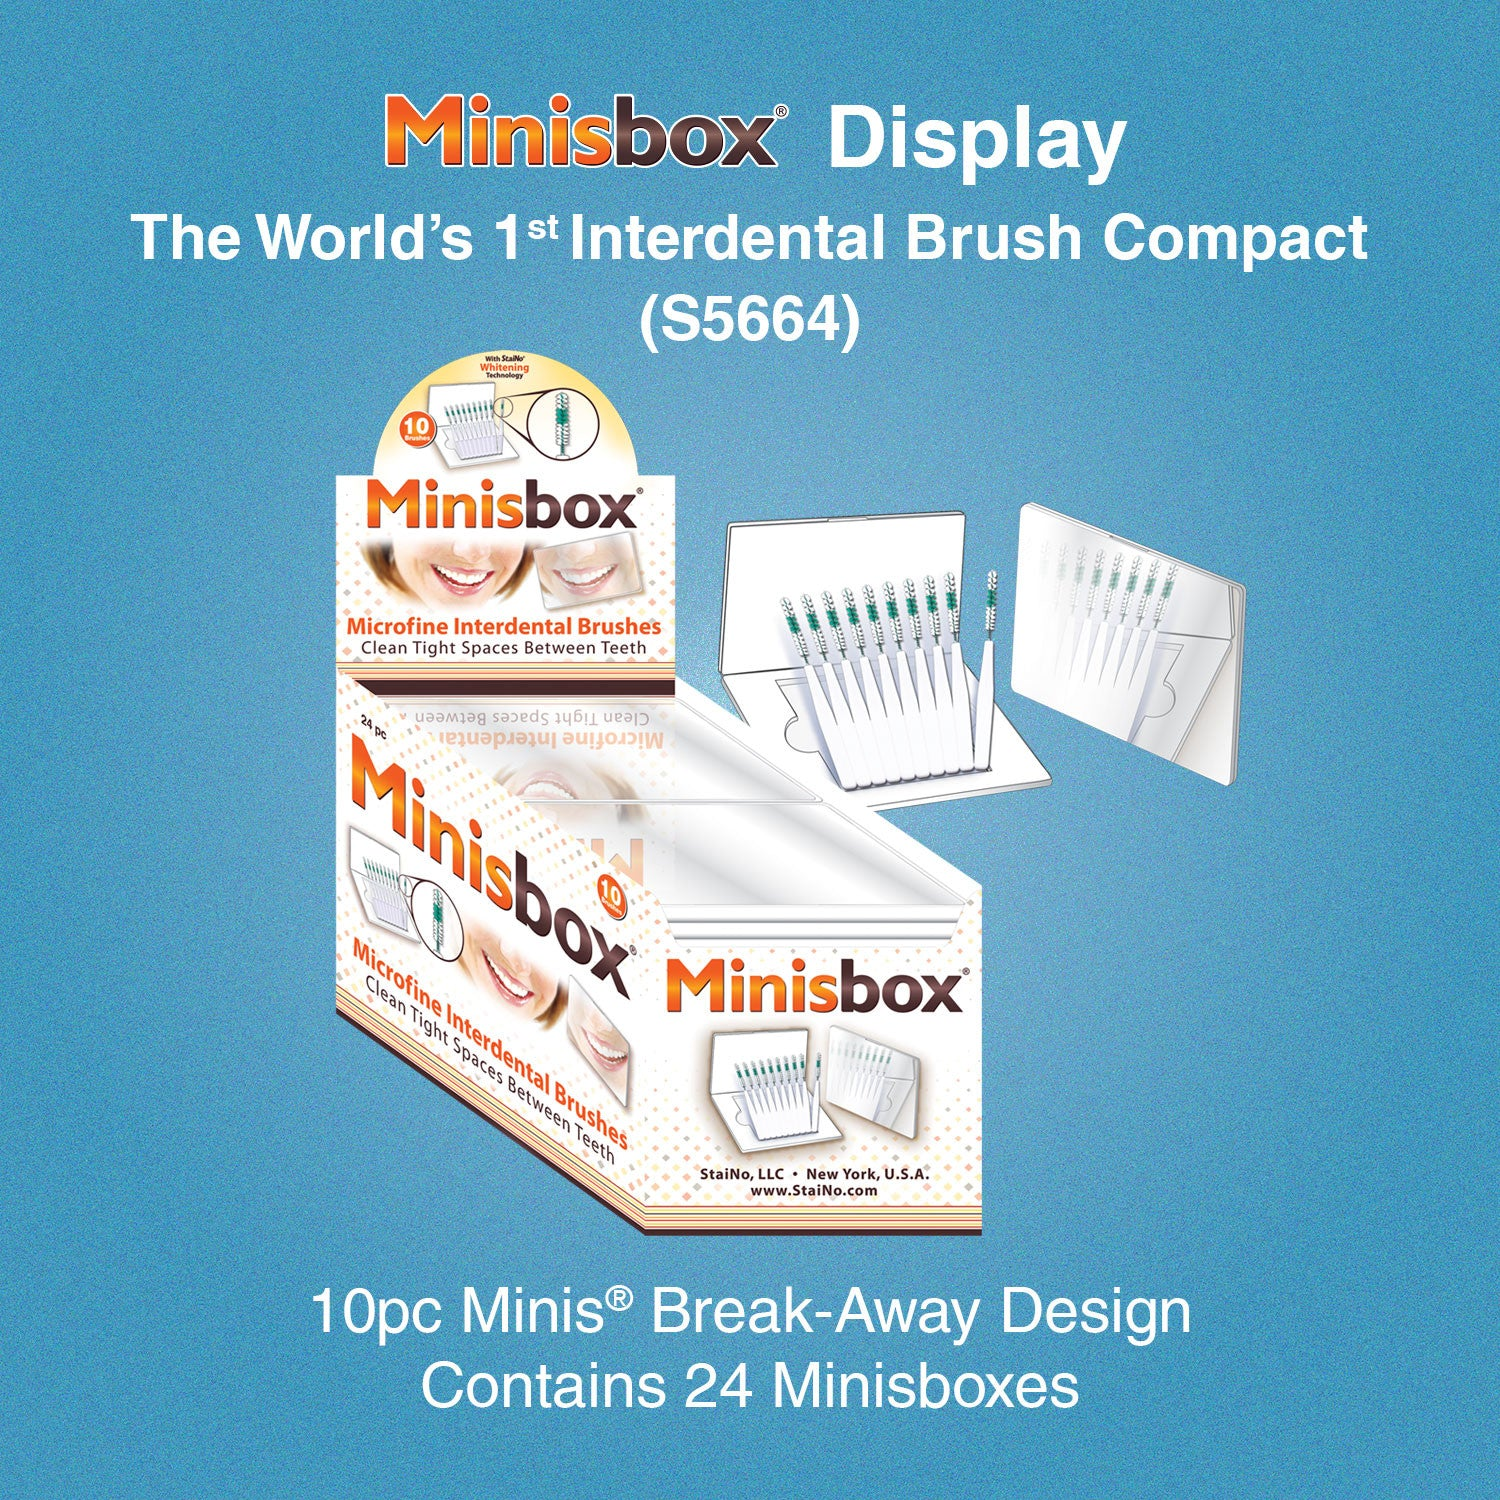 Minisbox Display